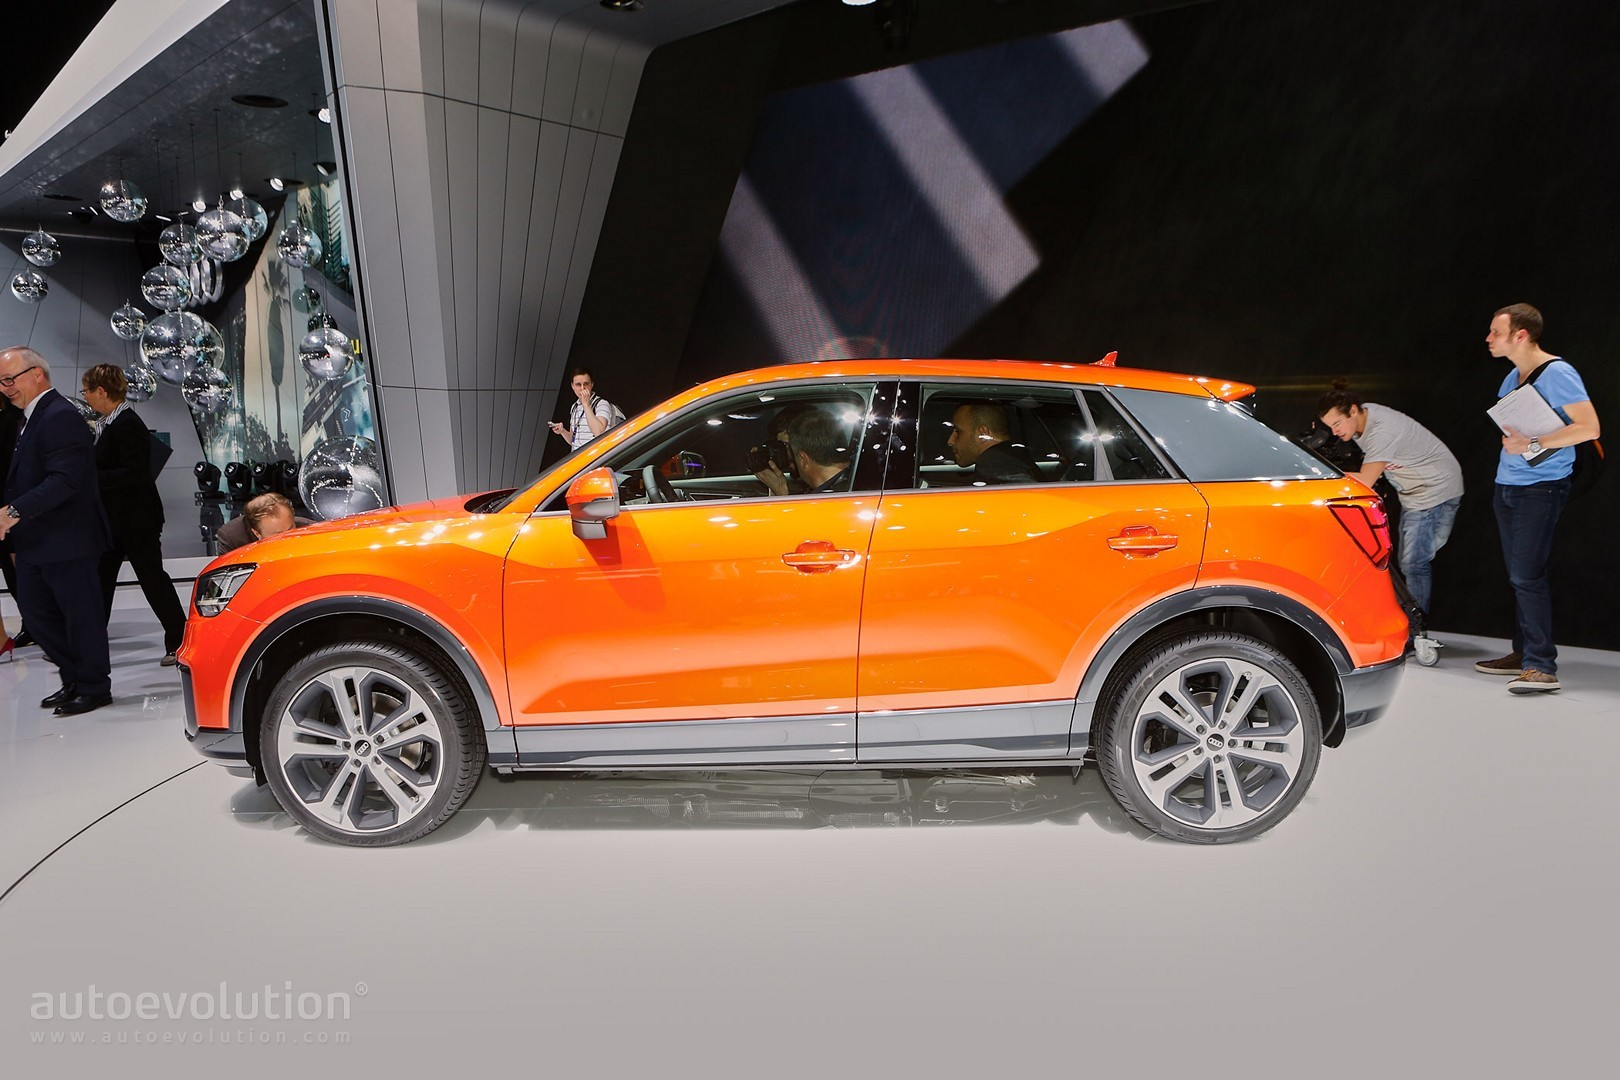 Audi Q2 Debuts in Geneva: You Hate It, but They'll Sell a Million - autoevolution